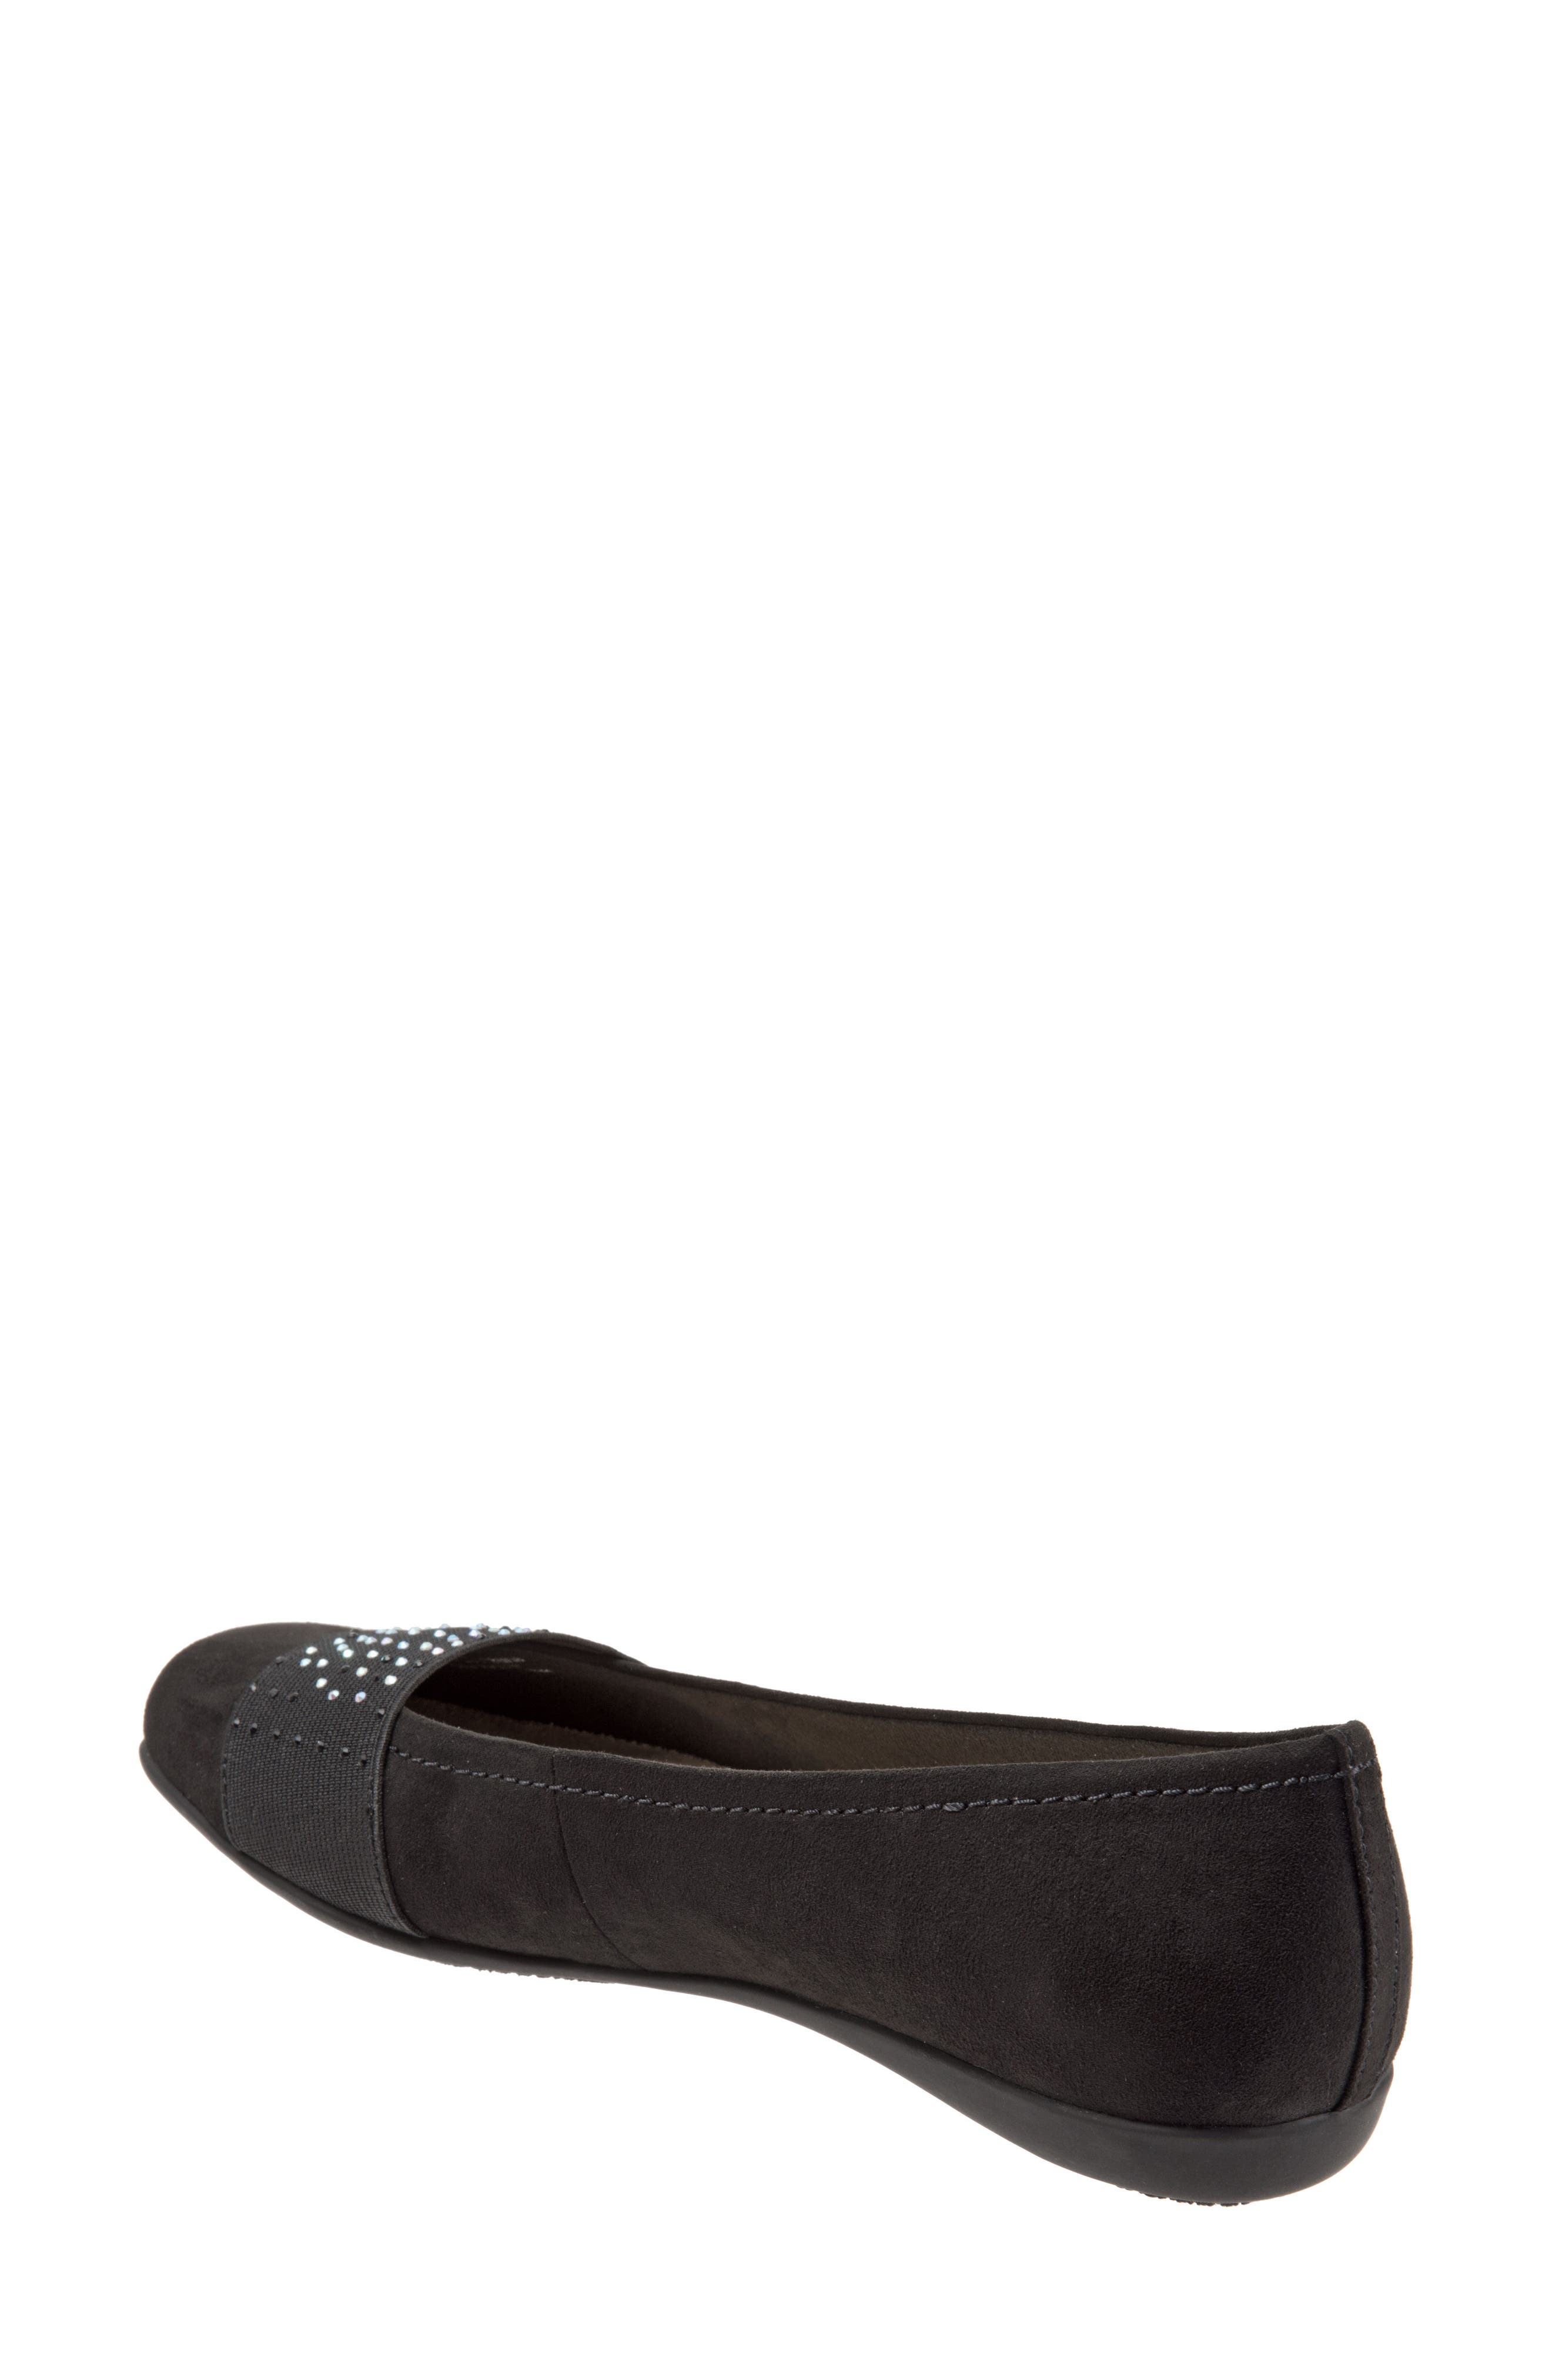 TROTTERS,                             Samantha Flat,                             Alternate thumbnail 7, color,                             BLACK SUEDE